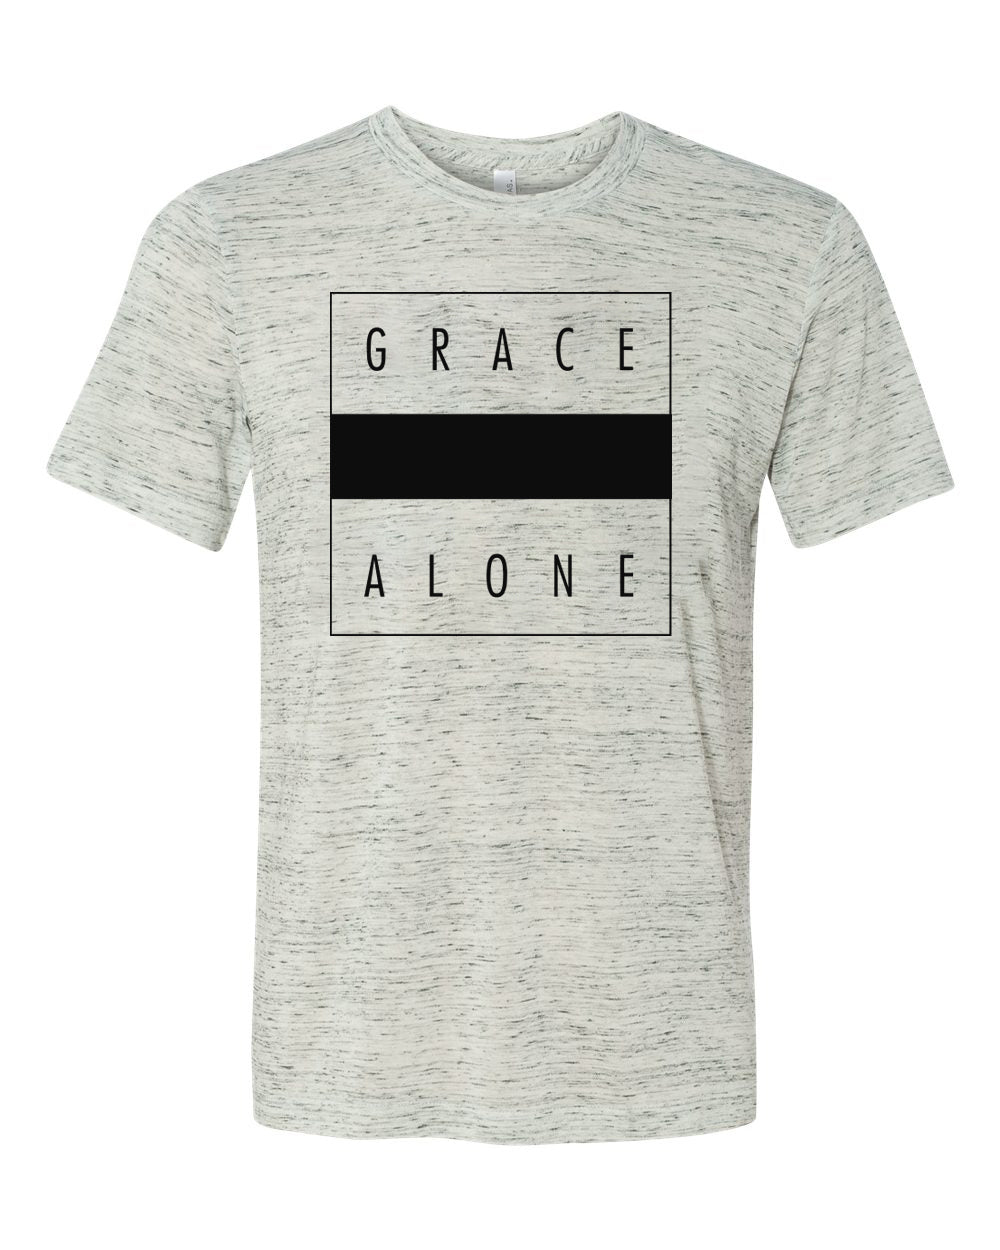 Grace Alone Marble Tee